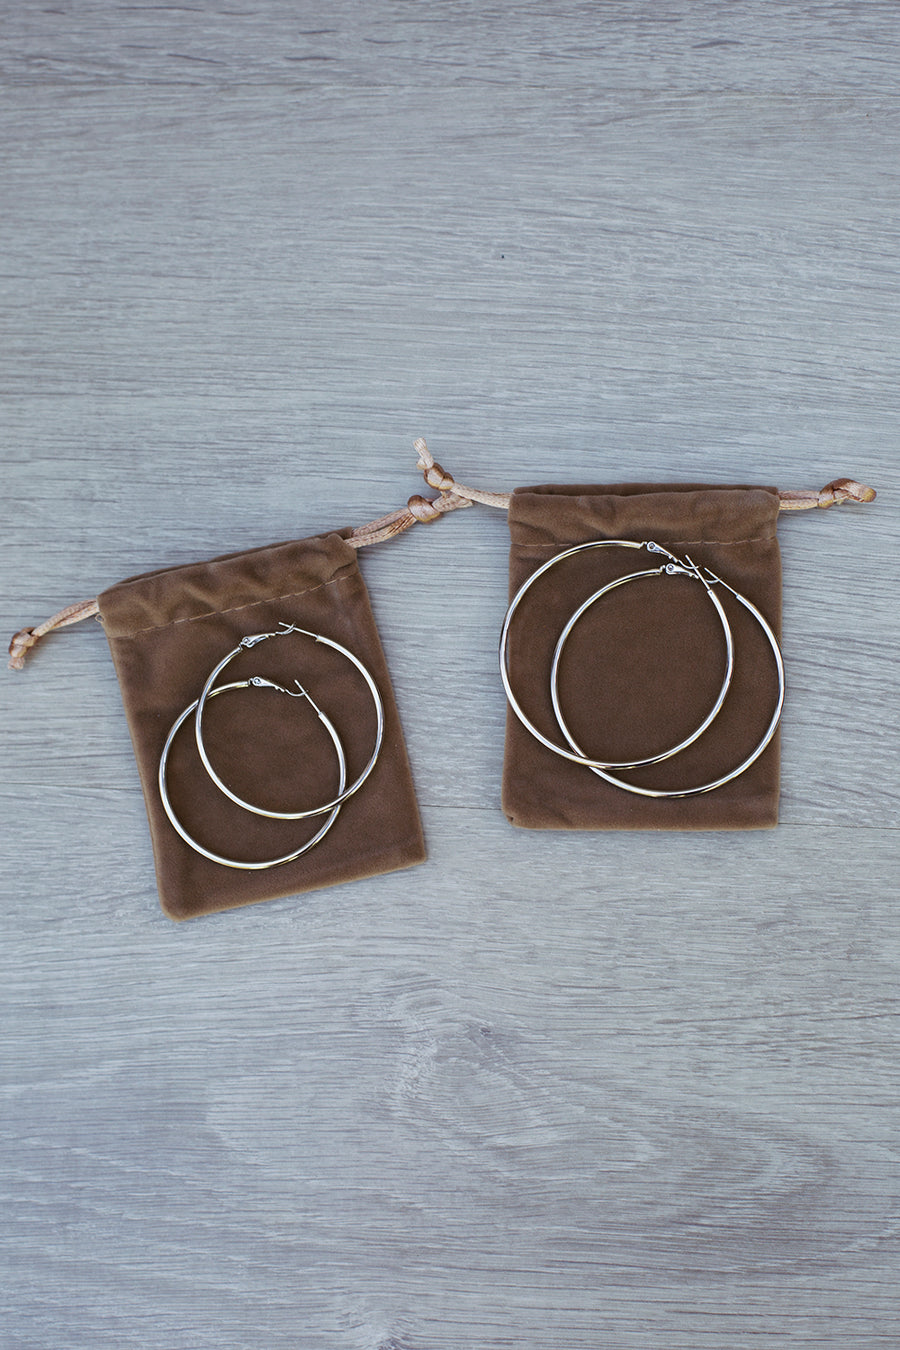 Big City Hoop Earrings in Silver - HER Empire Fashion Boutique Terrigal & Online